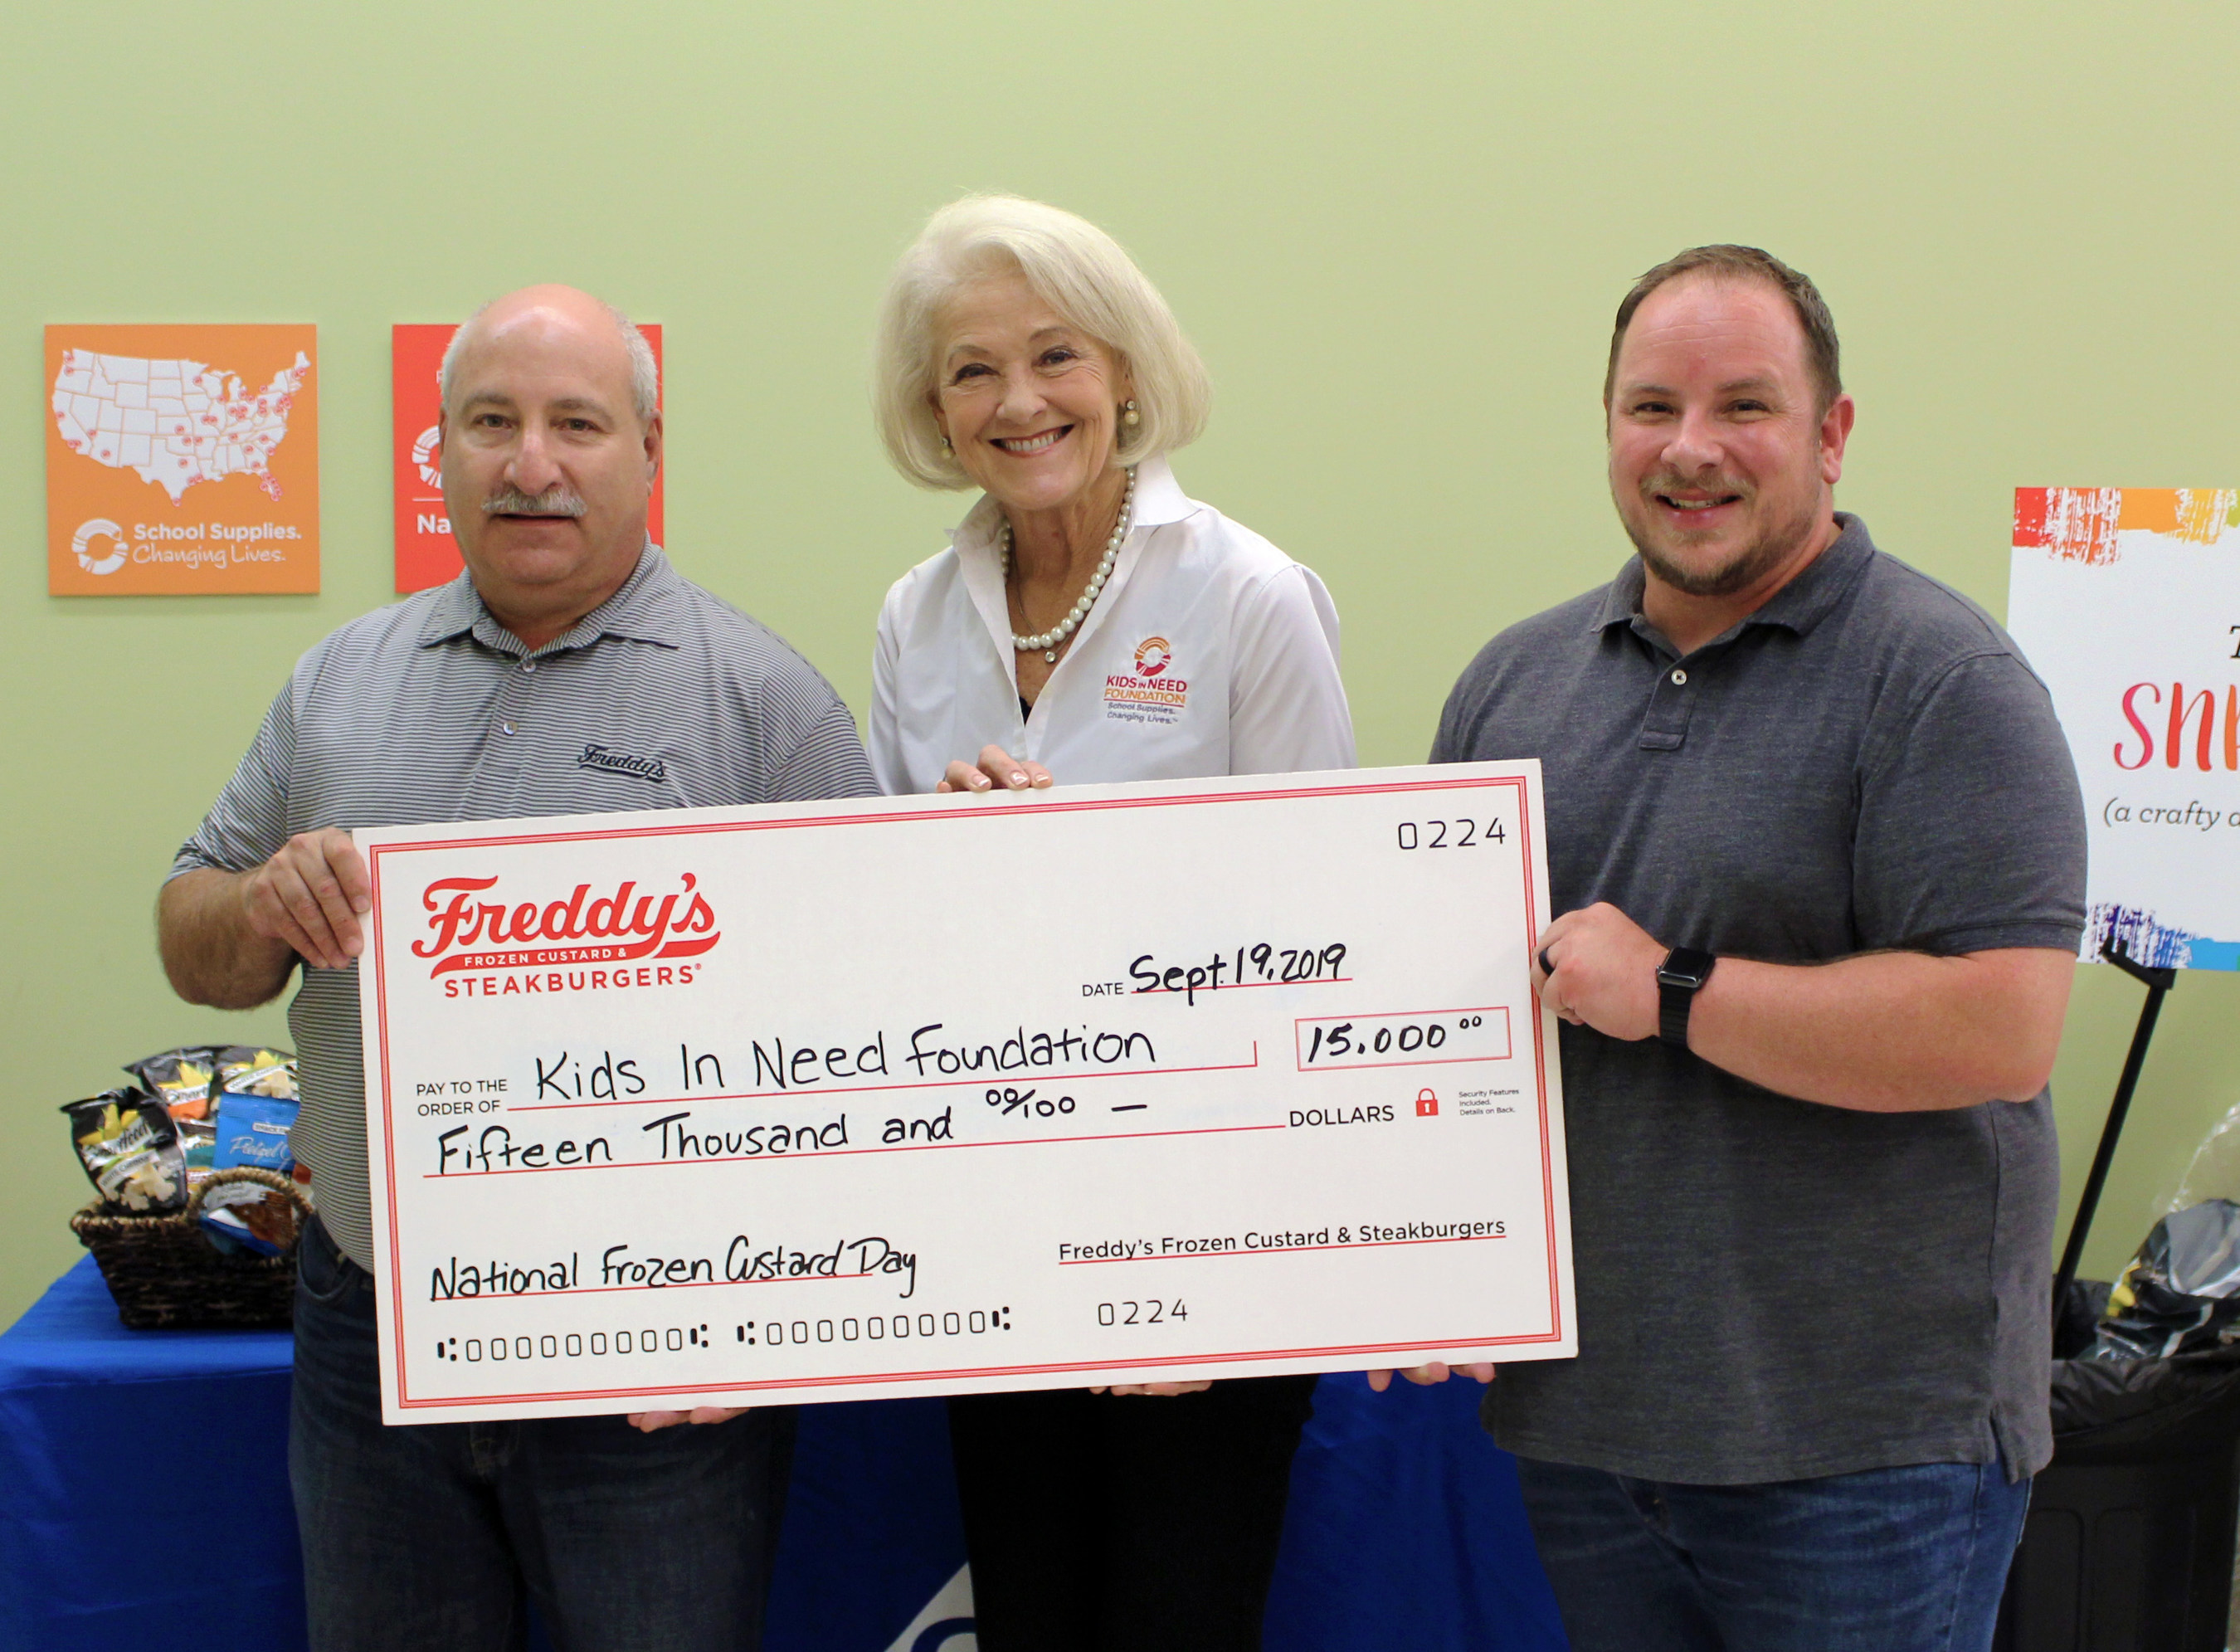 Freddy's National Frozen Custard Day Promotion Raises $15,000 For ...